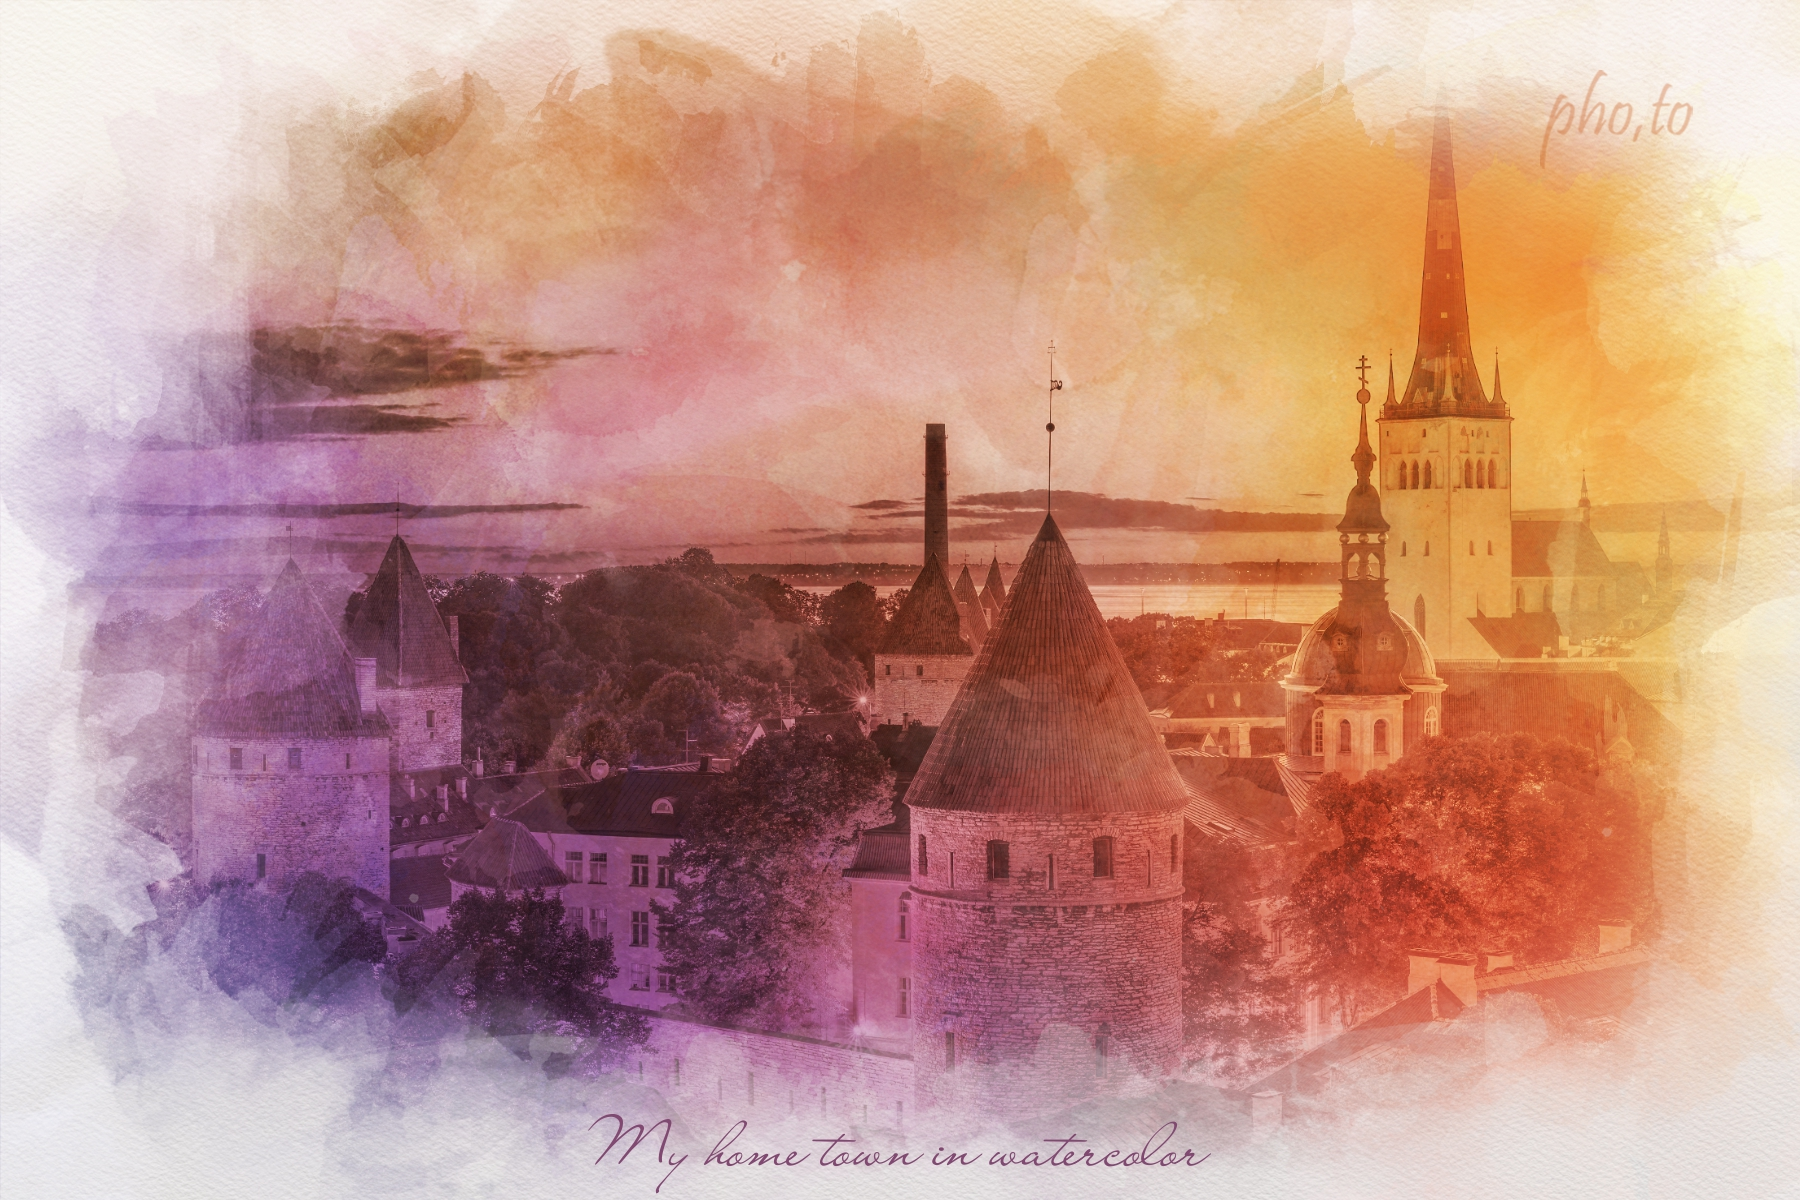 A cityscape photo turned into a watercolor painting in soft warm colors.